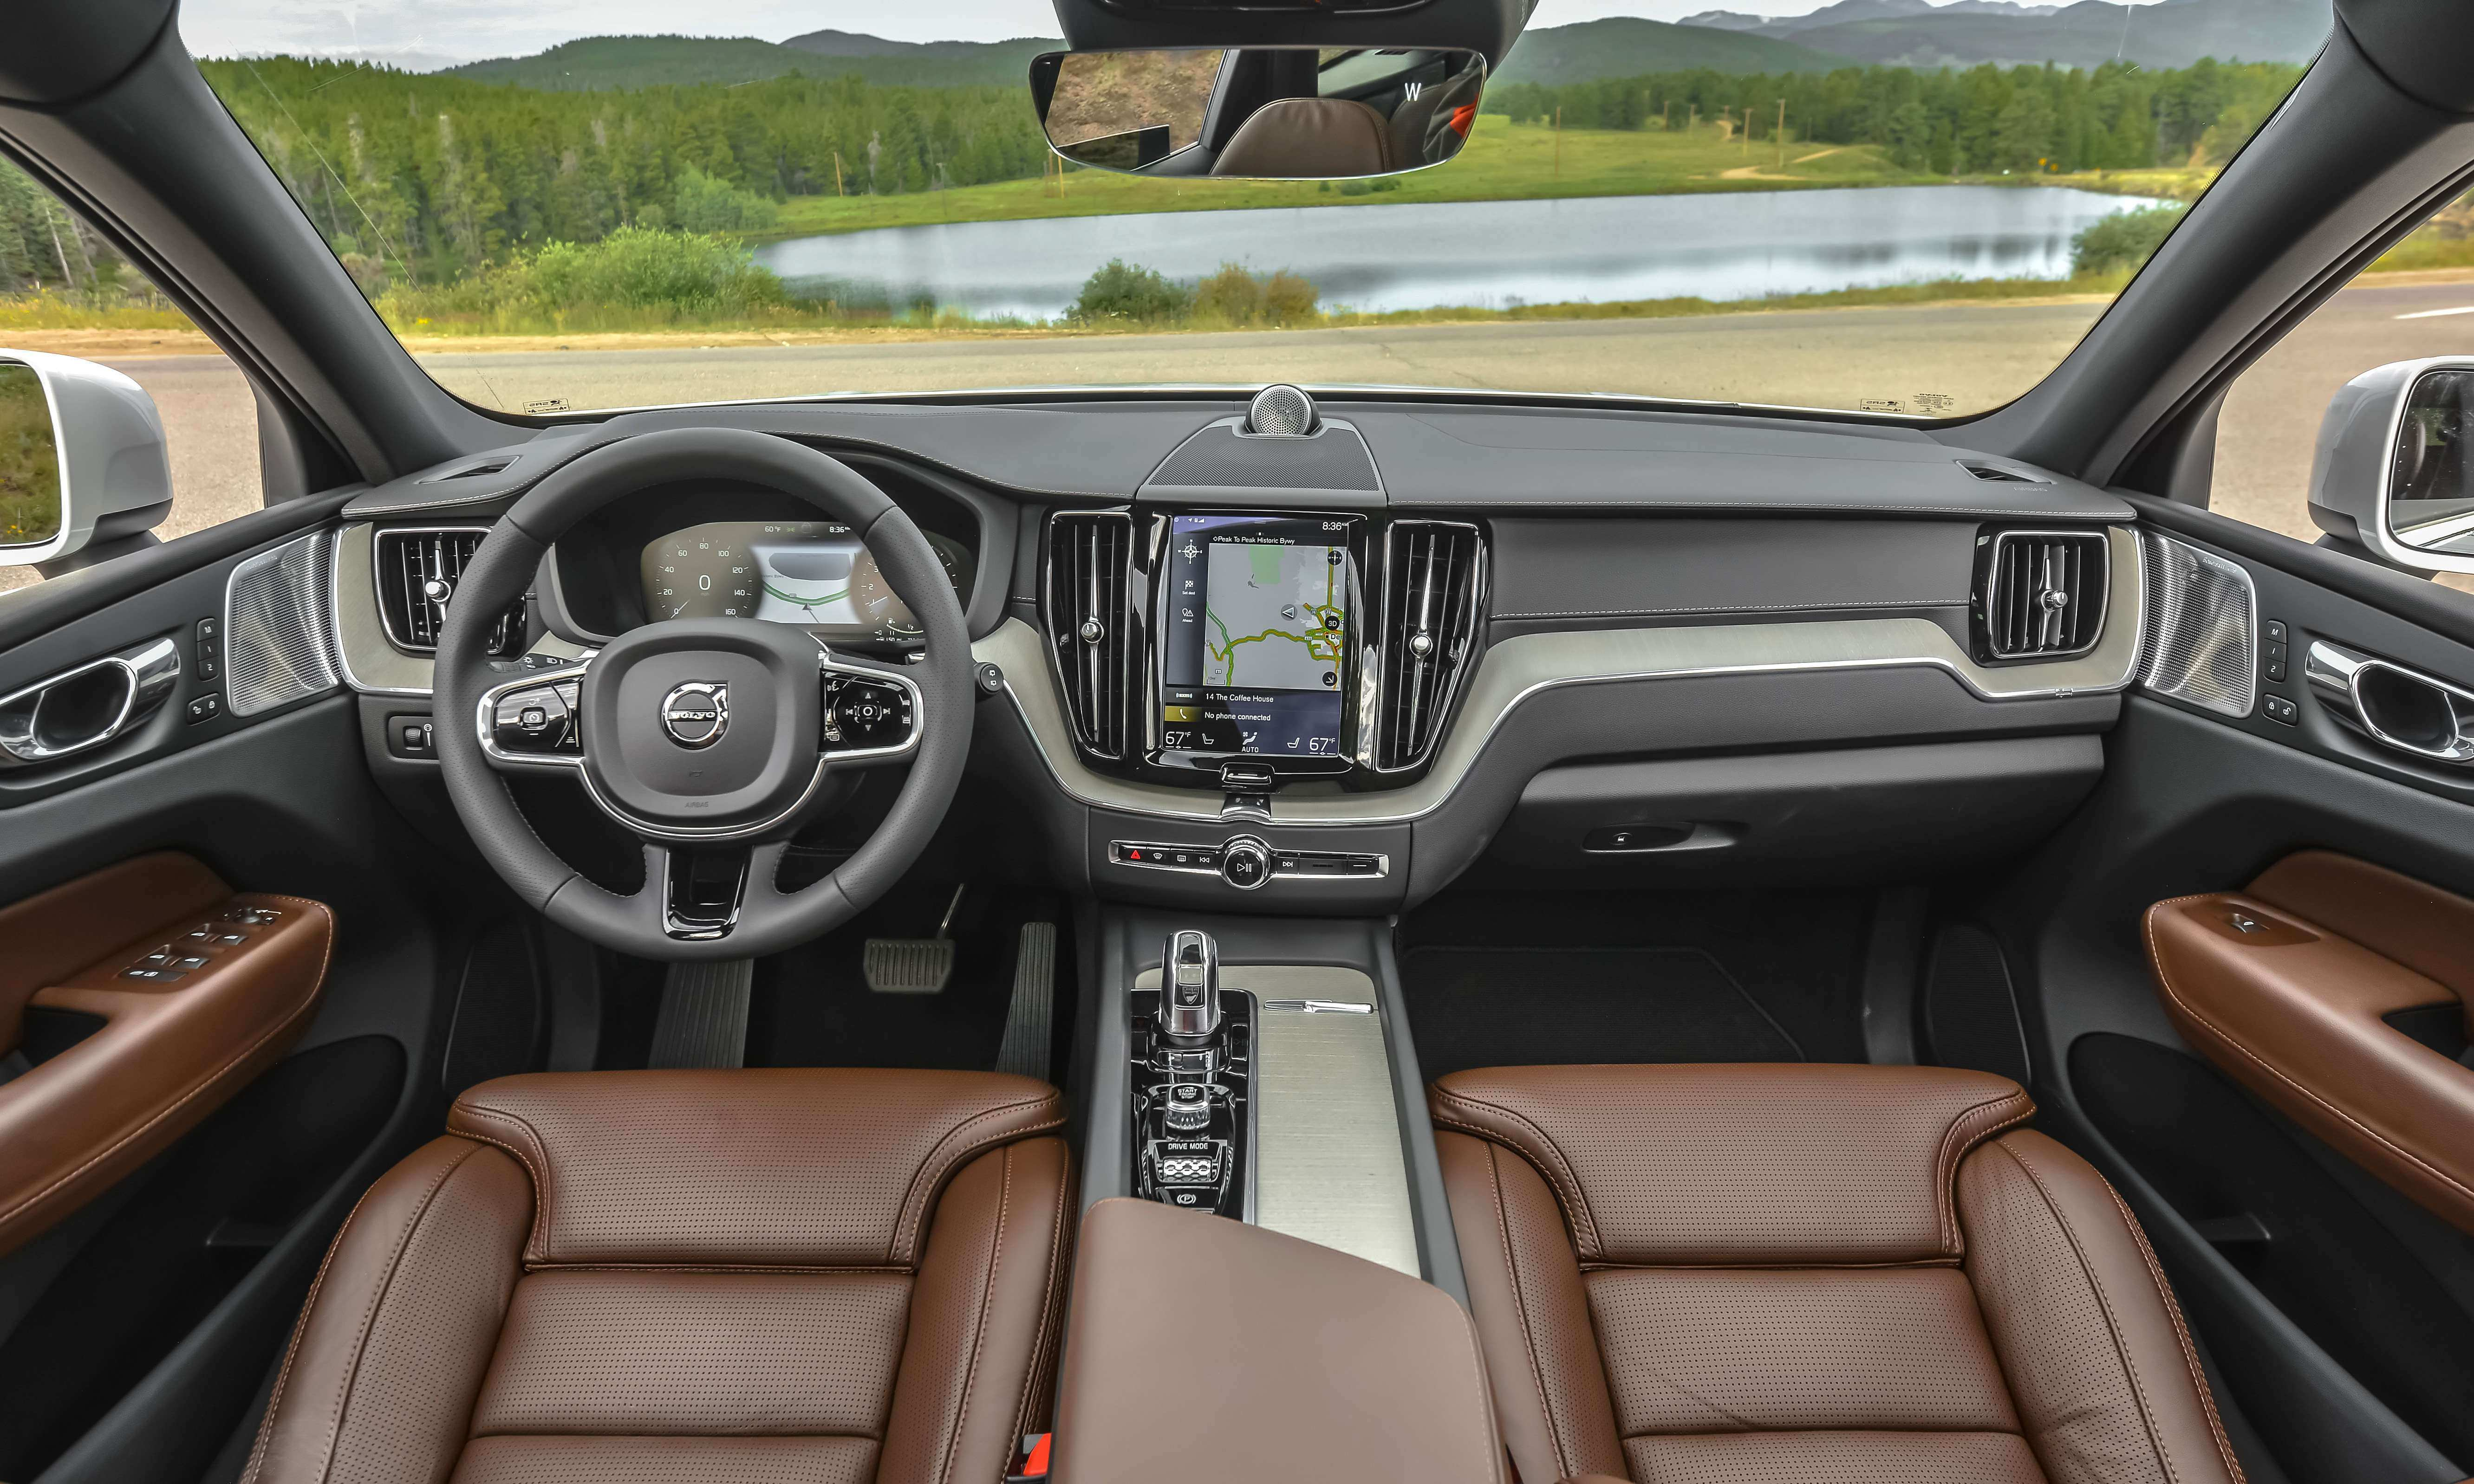 42 Concept of Volvo 2020 Fuel Consumption Photos with Volvo 2020 Fuel Consumption